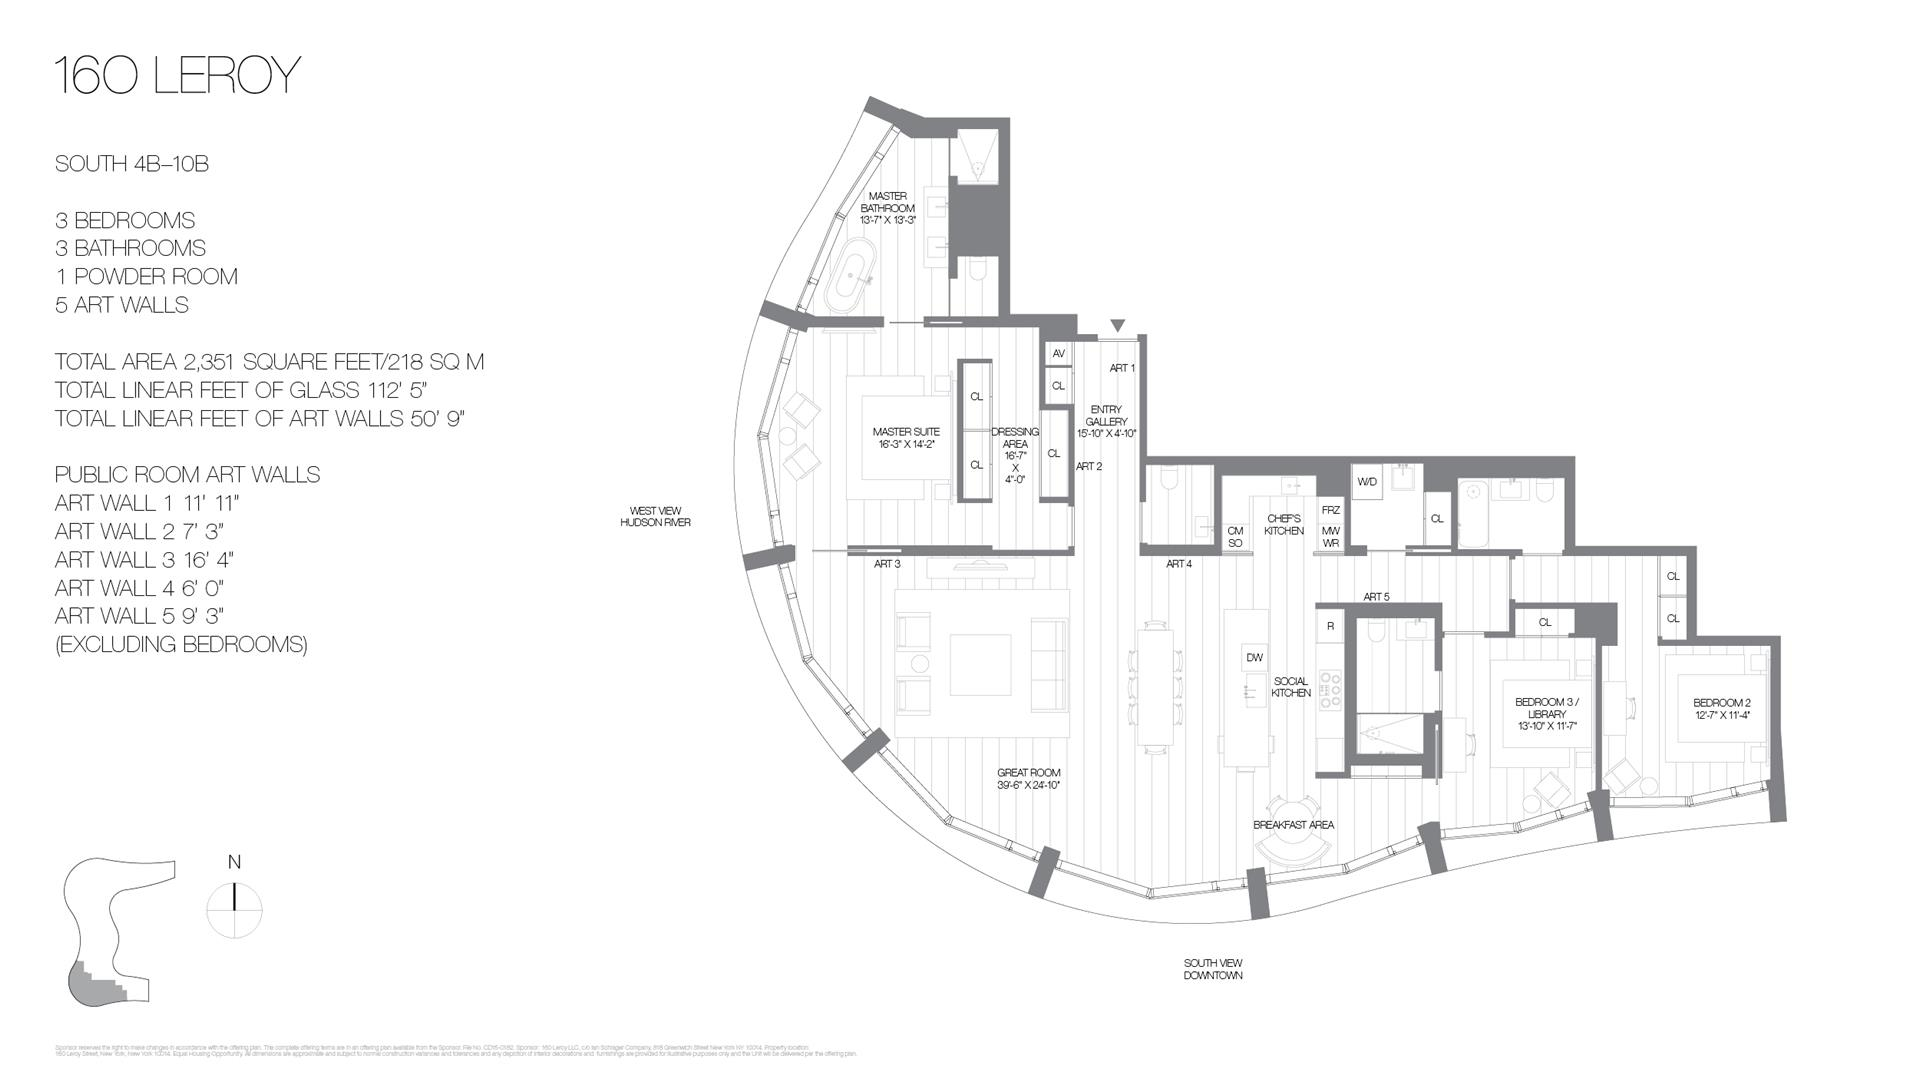 Floor plan of 160 Leroy St, SOUTH8B - West Village - Meatpacking District, New York